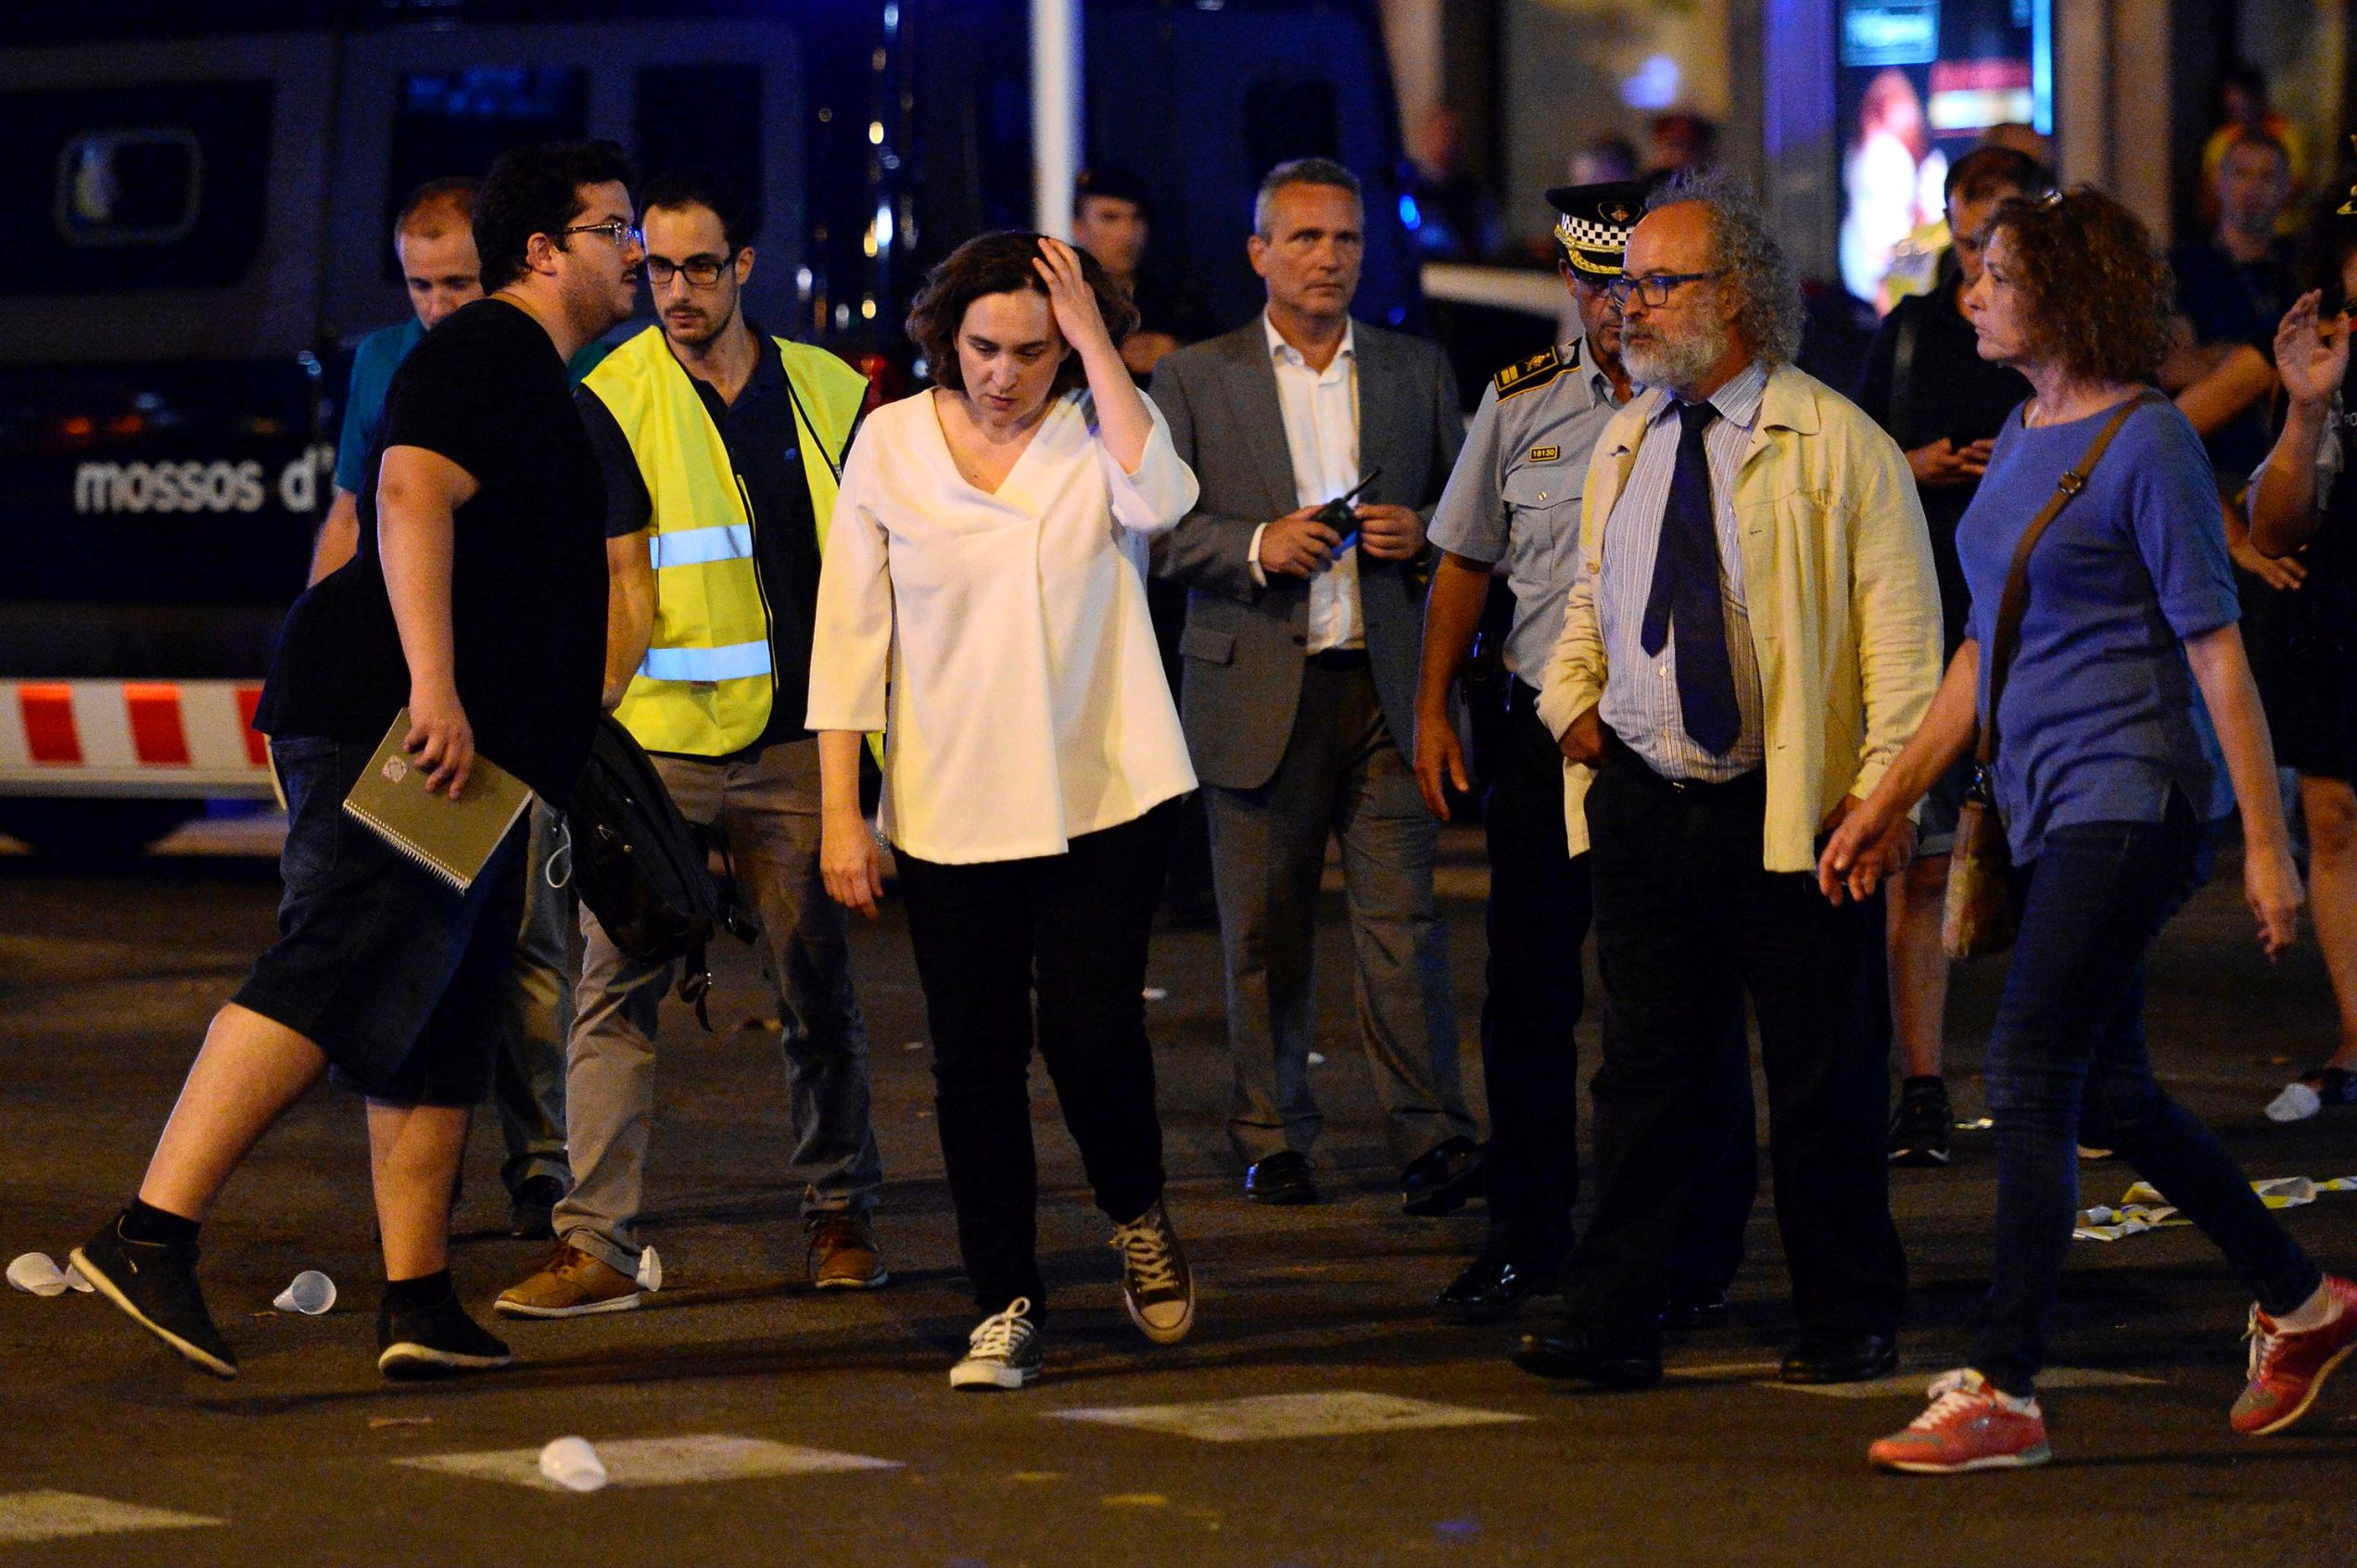 """Slide 4 of 25: Barcelona's Mayor Ada Colau (3rdL) and officials arrive on the Rambla boulevard after a van ploughed into the crowd, killing at least 13 people and injuring around 100 others on the Rambla in Barcelona on August 17, 2017. A driver deliberately rammed a van into a crowd on Barcelona's most popular street on August 17, 2017 killing at least 13 people before fleeing to a nearby bar, police said.  Officers in Spain's second-largest city said the ramming on Las Ramblas was a """"terrorist attack"""". The driver of a van that mowed into a packed street in Barcelona is still on the run, Spanish police said. / AFP PHOTO / Josep LAGO        (Photo credit should read JOSEP LAGO/AFP/Getty Images)"""